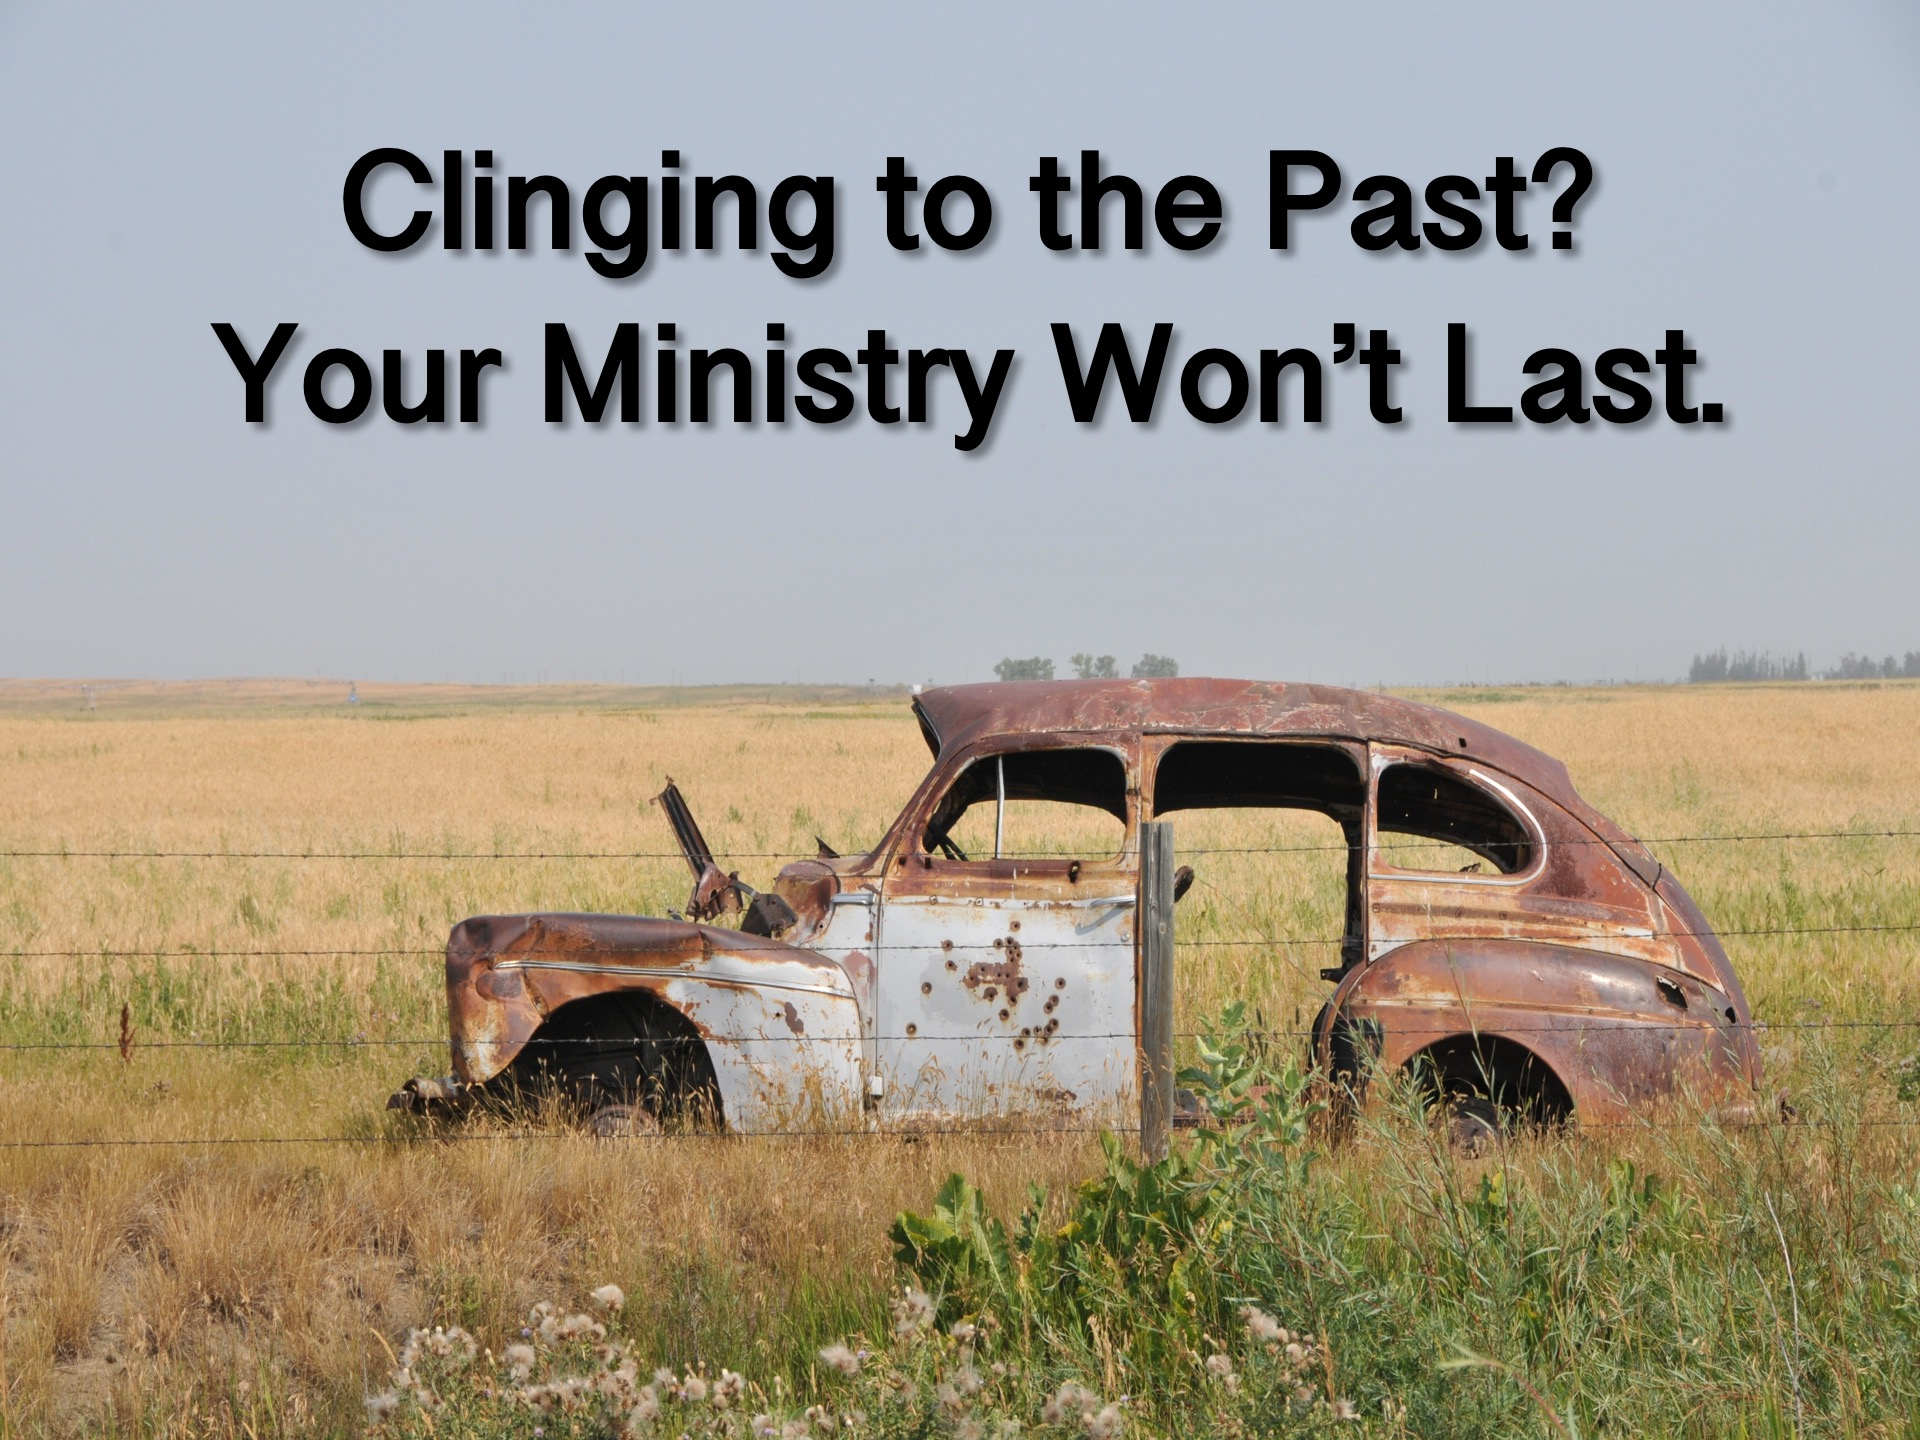 Clinging to the Past? Your Ministry Won't Last  ~ RELEVANT